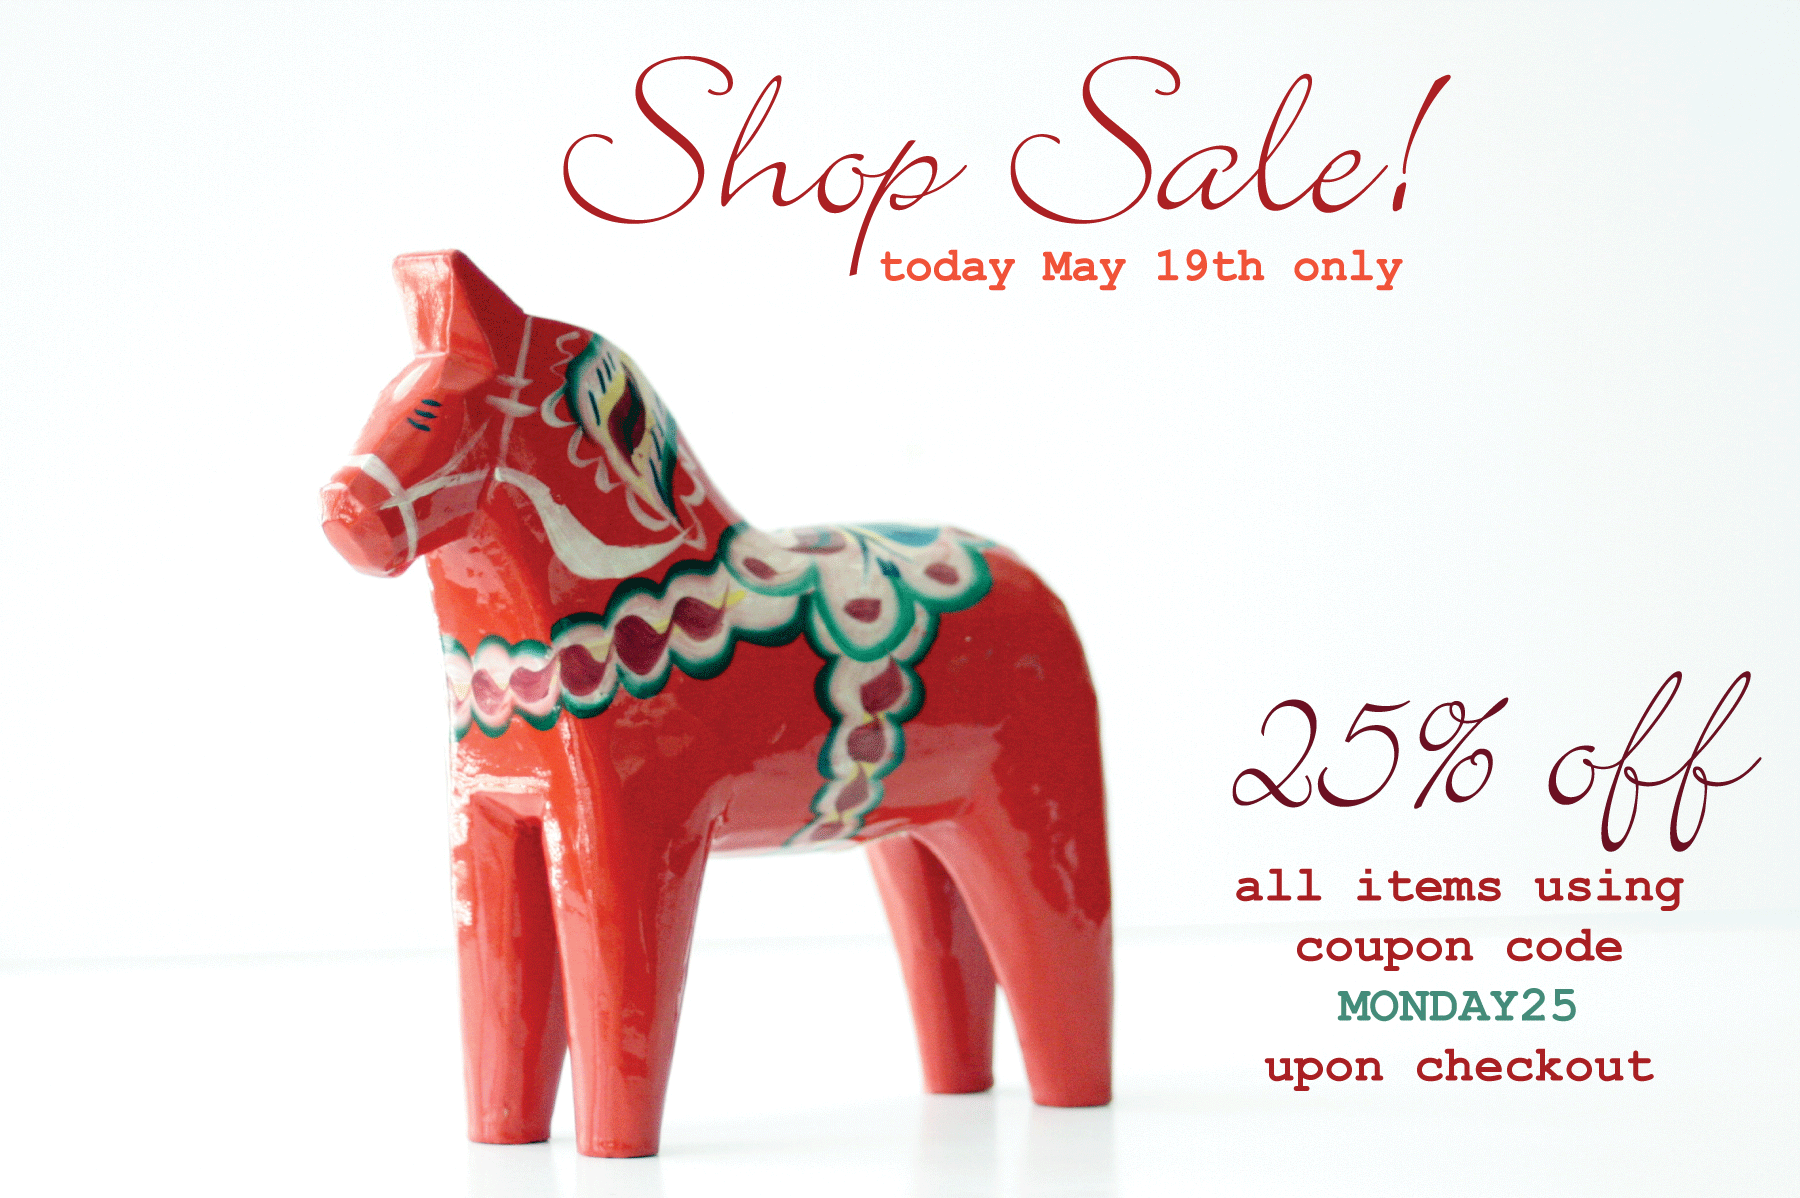 click the horse to start shopping!